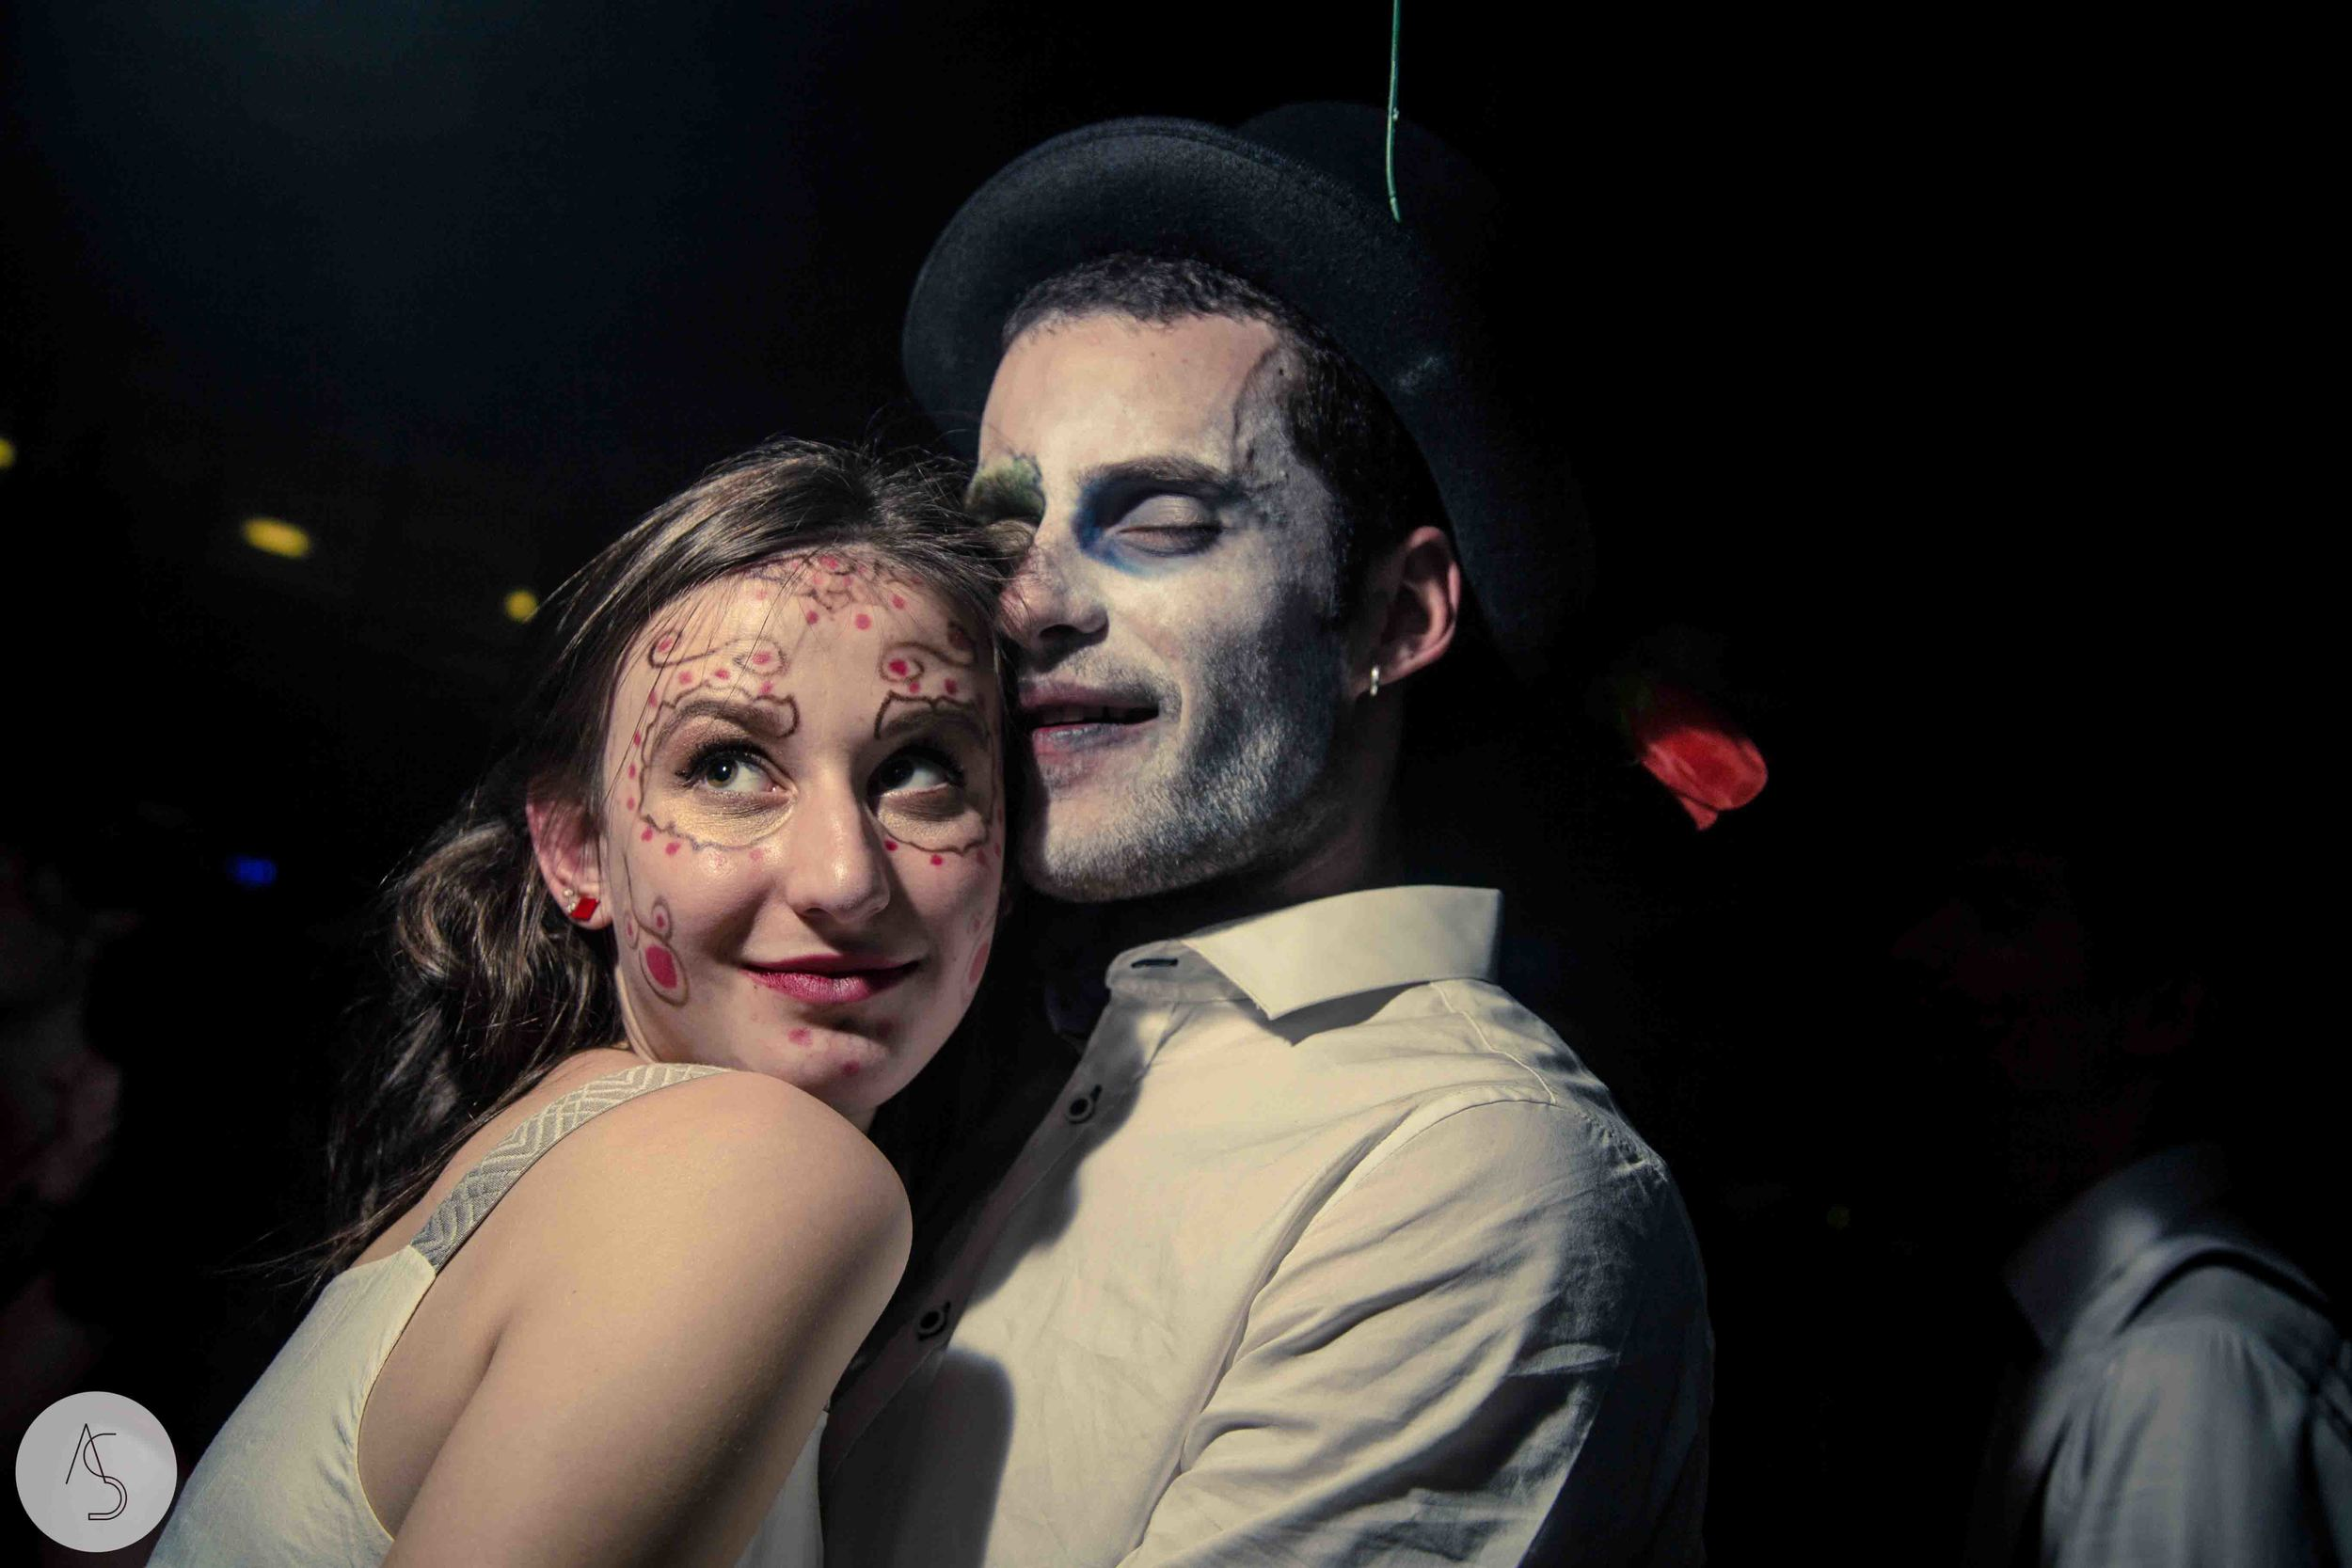 Electro swing cabaret - Ninkasi- photographe evenements - Adriana Salazar photo-75.jpg